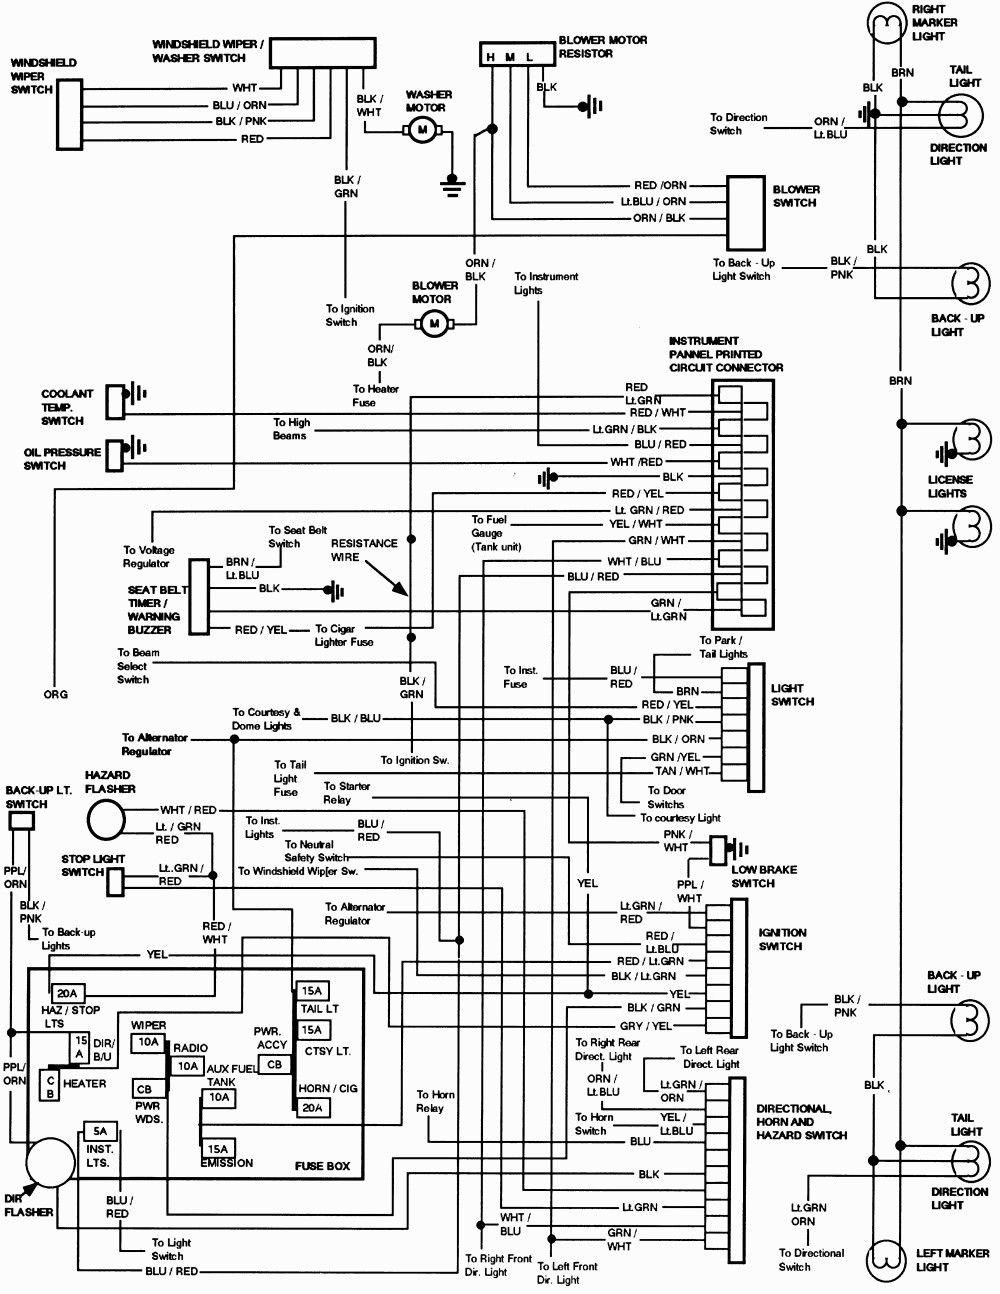 [DIAGRAM] 1988 F150 Wiring Diagram FULL Version HD Quality